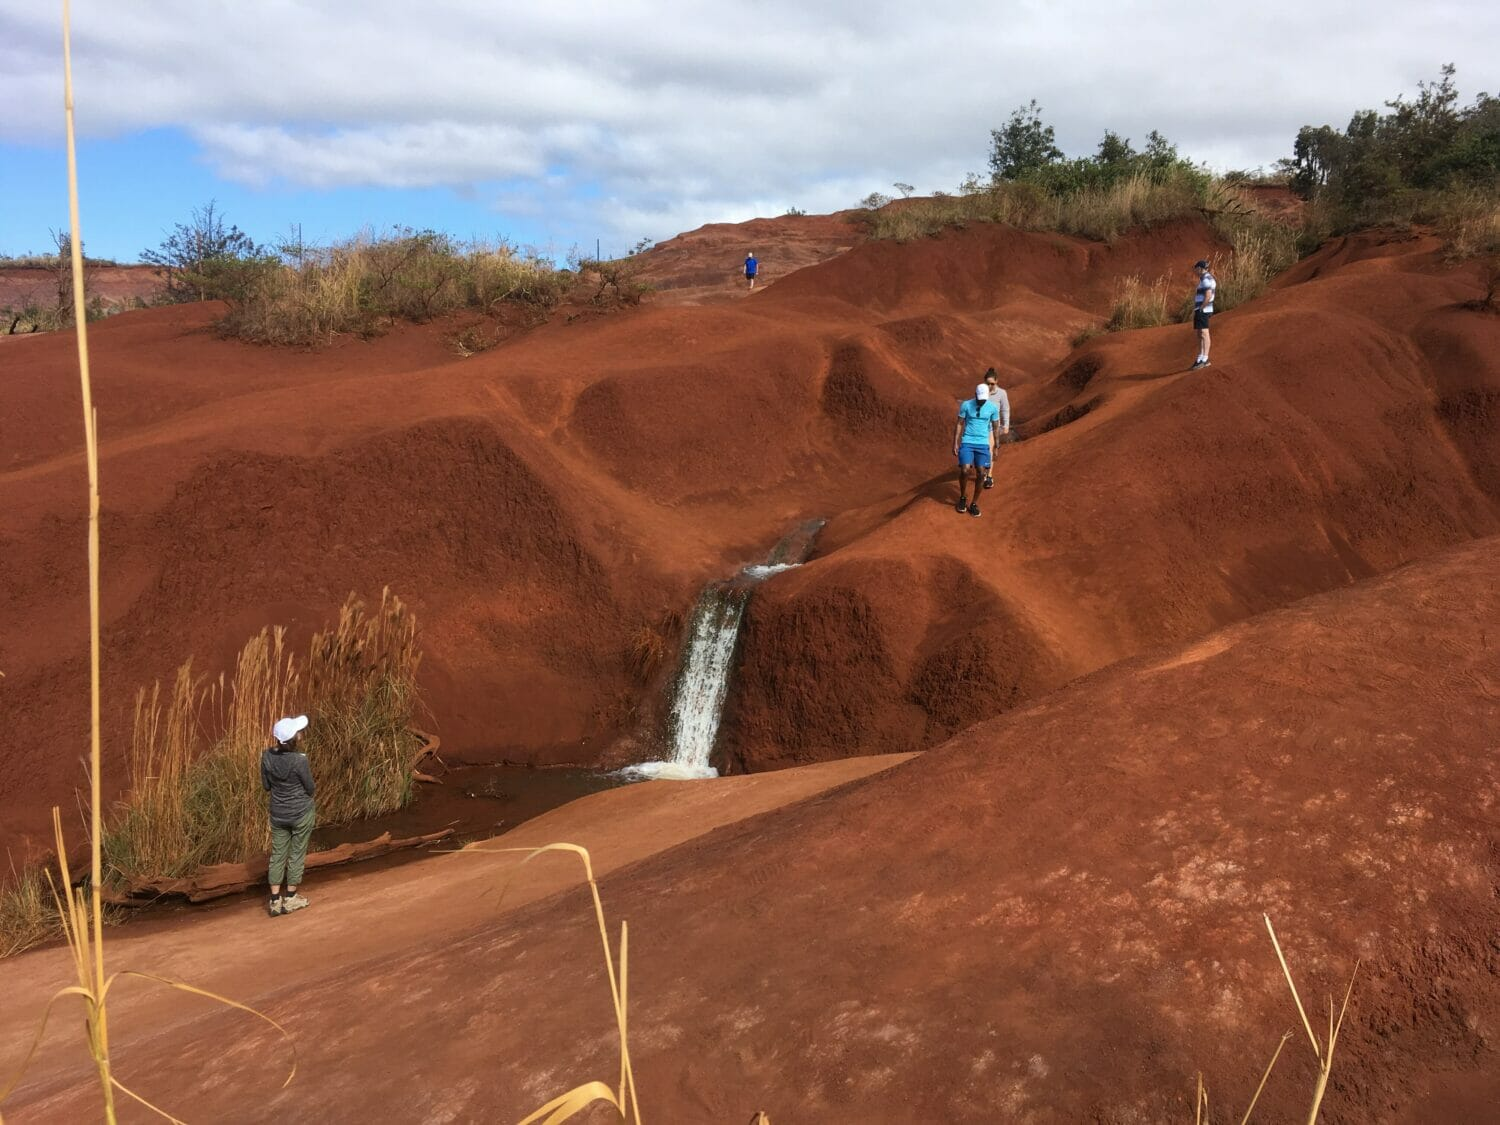 Considering a trip to Kauai with your keiki (kids)? This list of fun things to do on Kauai with kids, based on our own travels, will get you set to go!